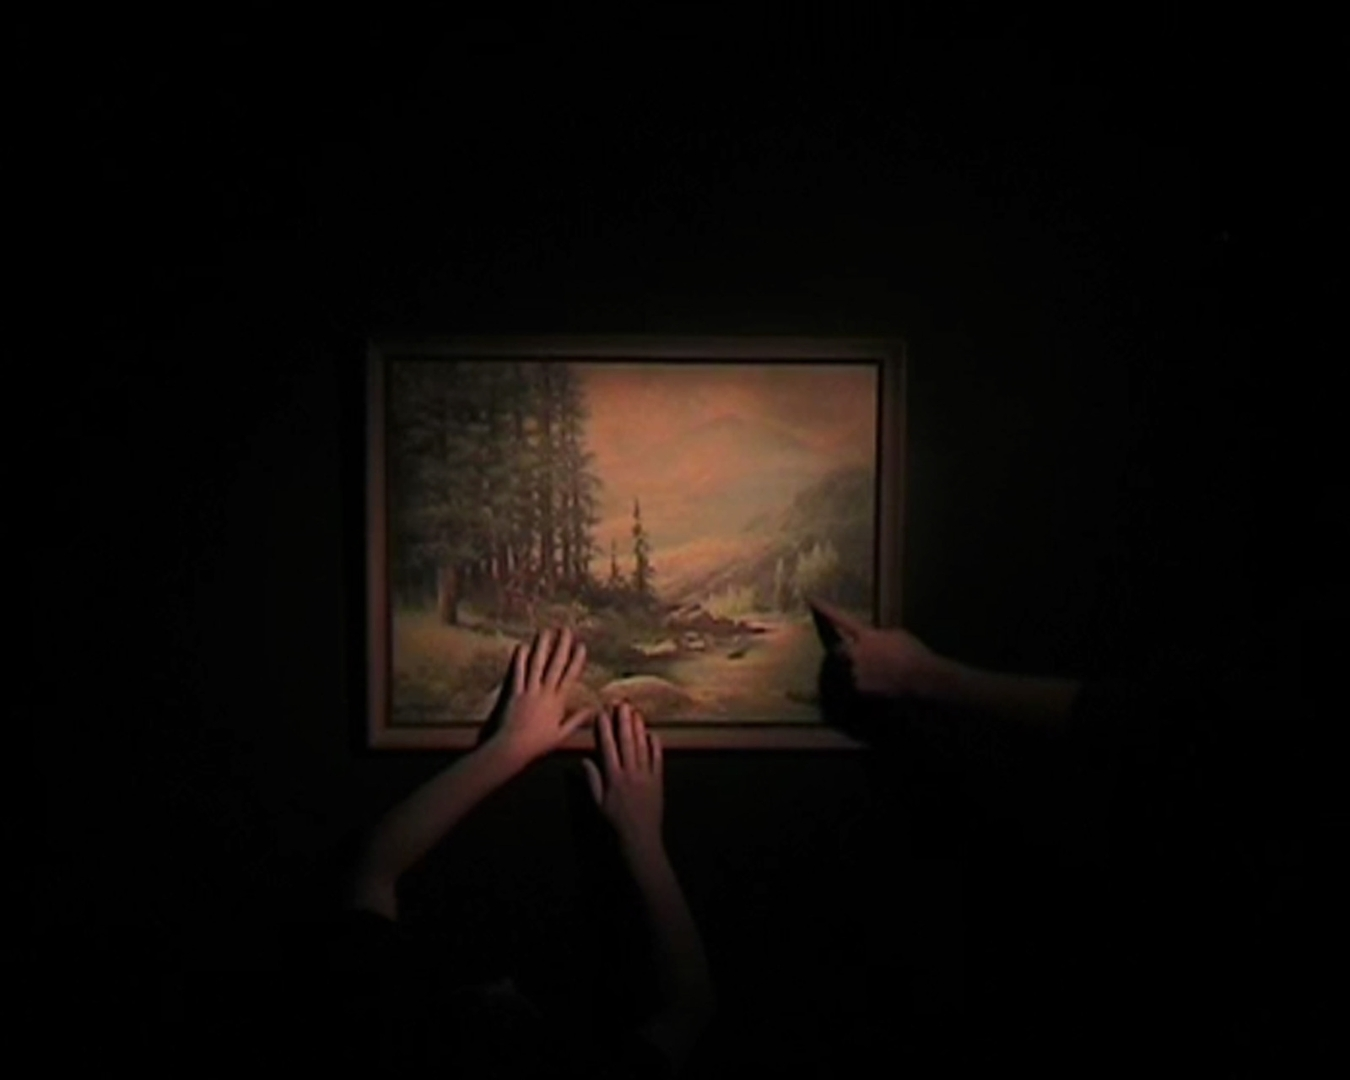 Stroking Painting image